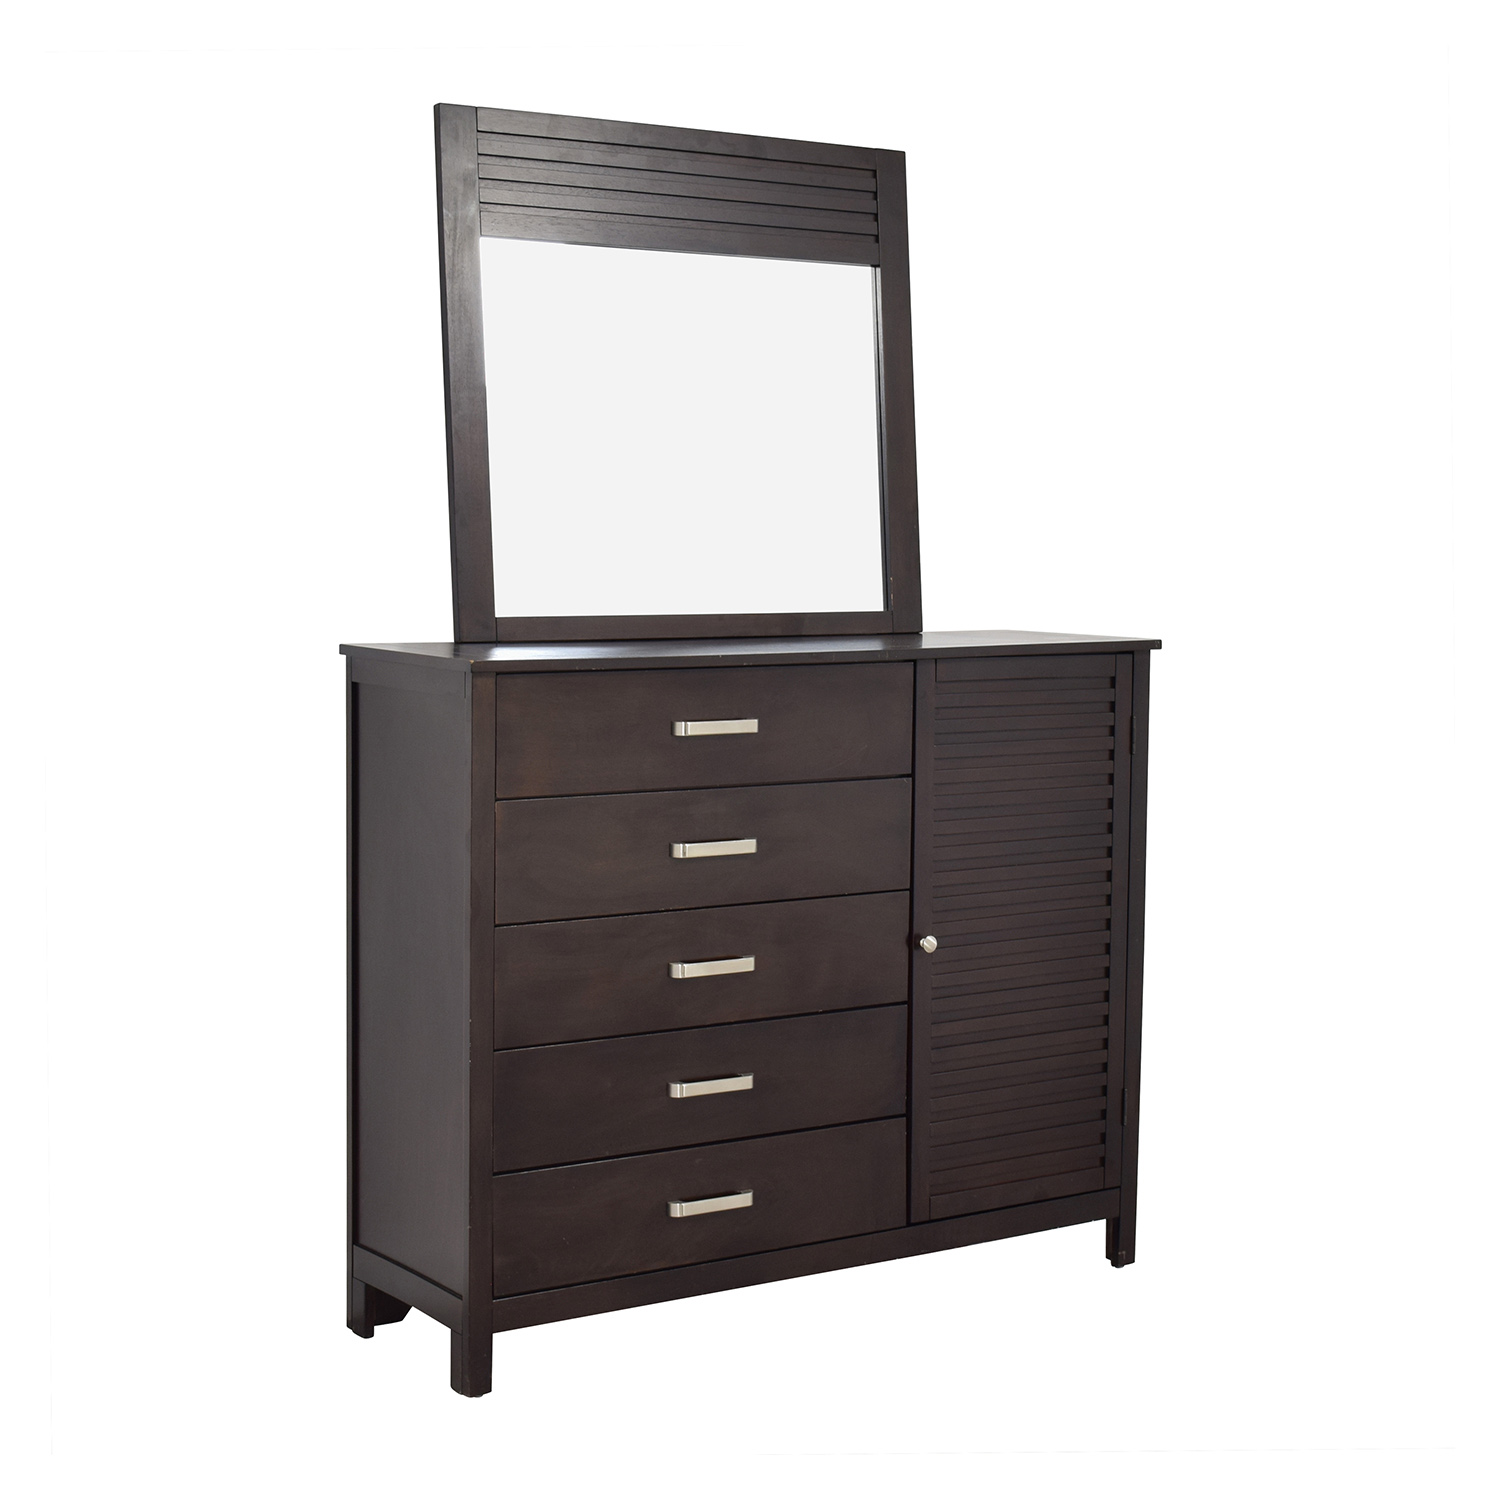 Rooms to Go Espresso Grove Five-Drawer Dresser with Mirror / Dressers